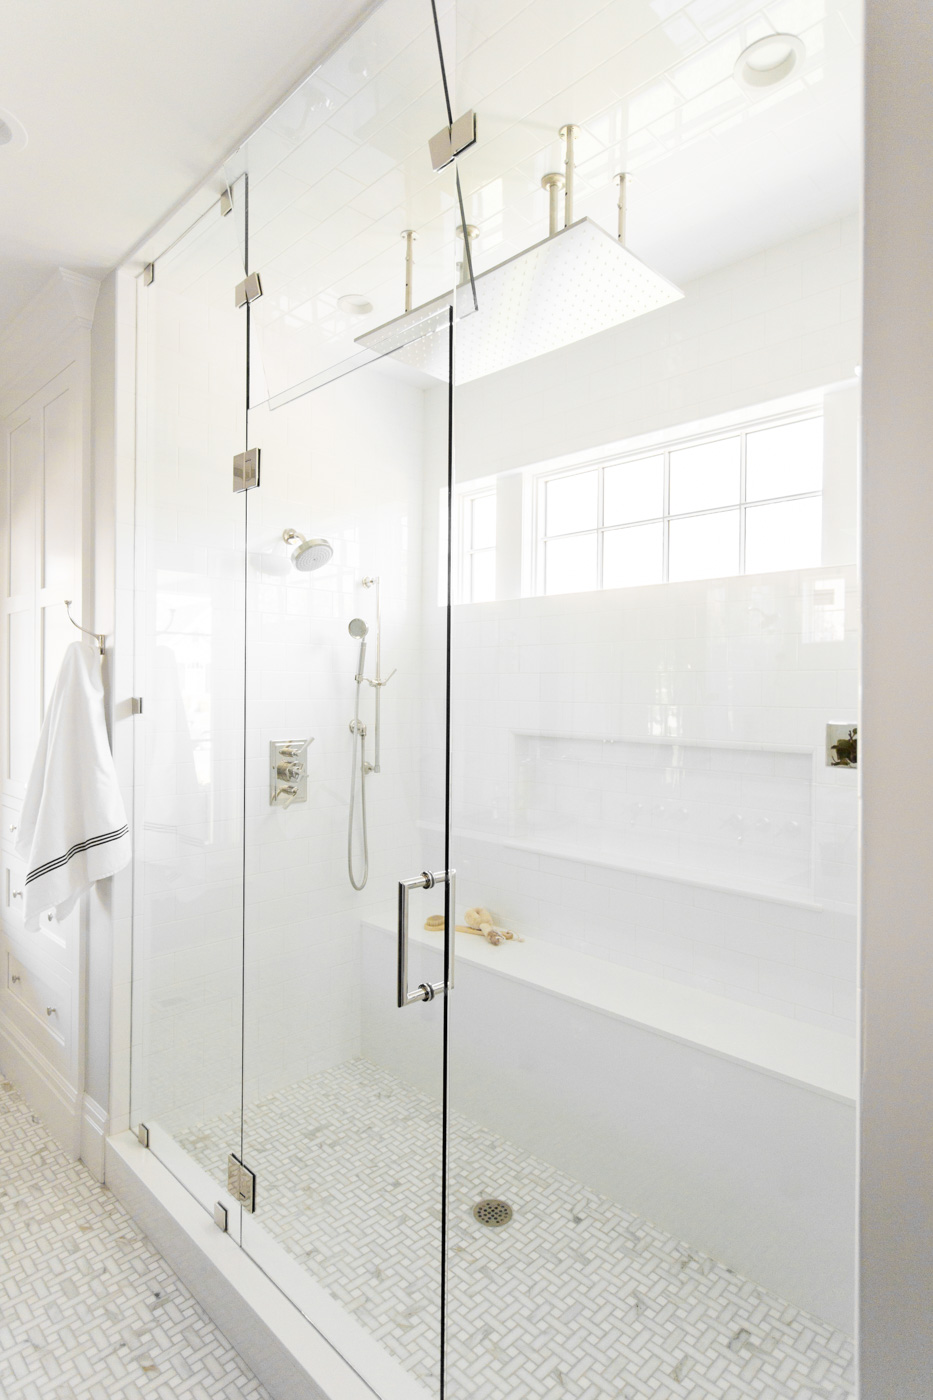 Shower+details+__+Studio+McGee.jpg